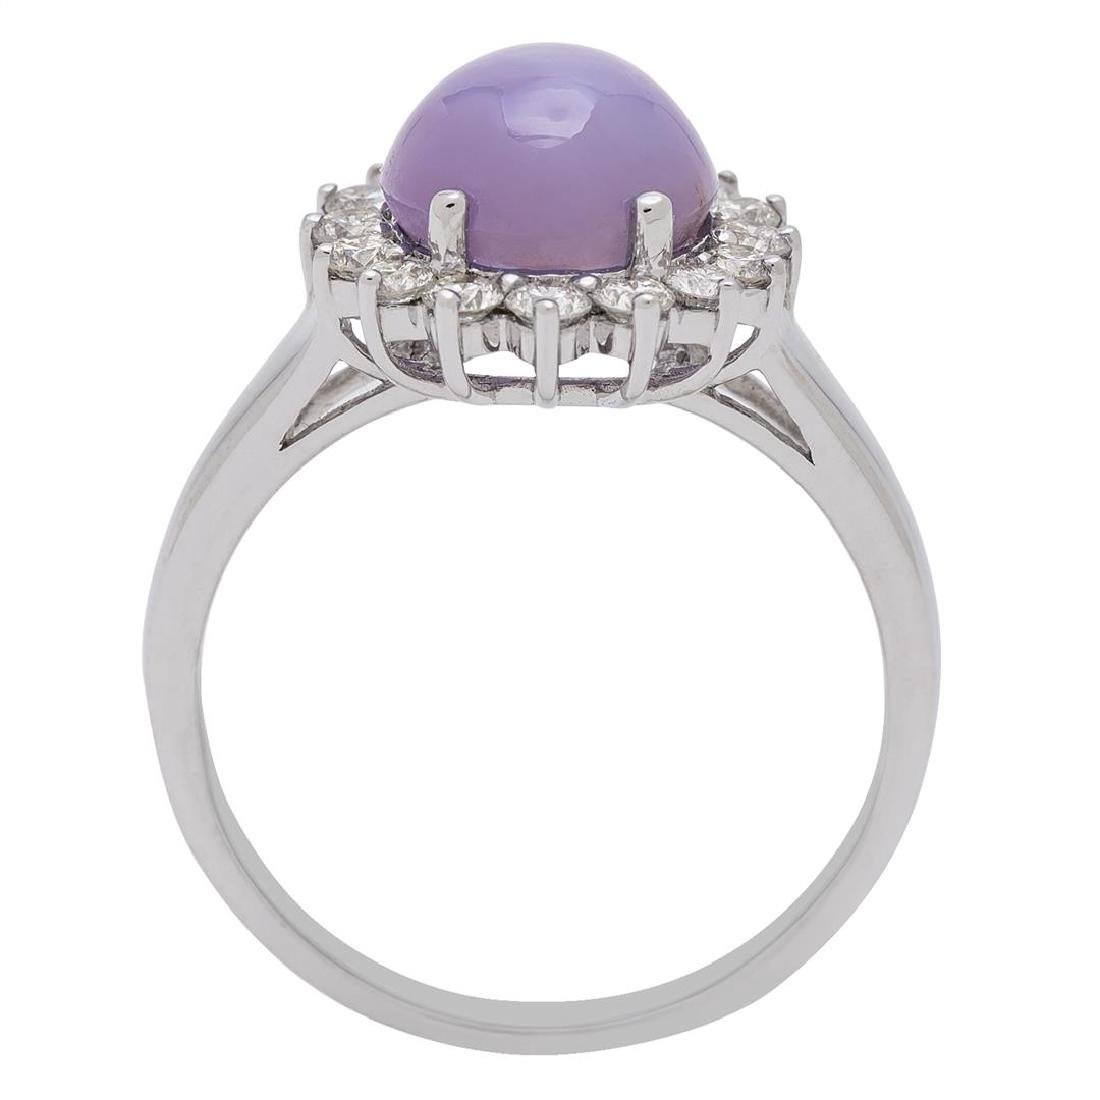 4.71 ctw Star Ruby and Diamond Ring - 18KT White Gold - 4